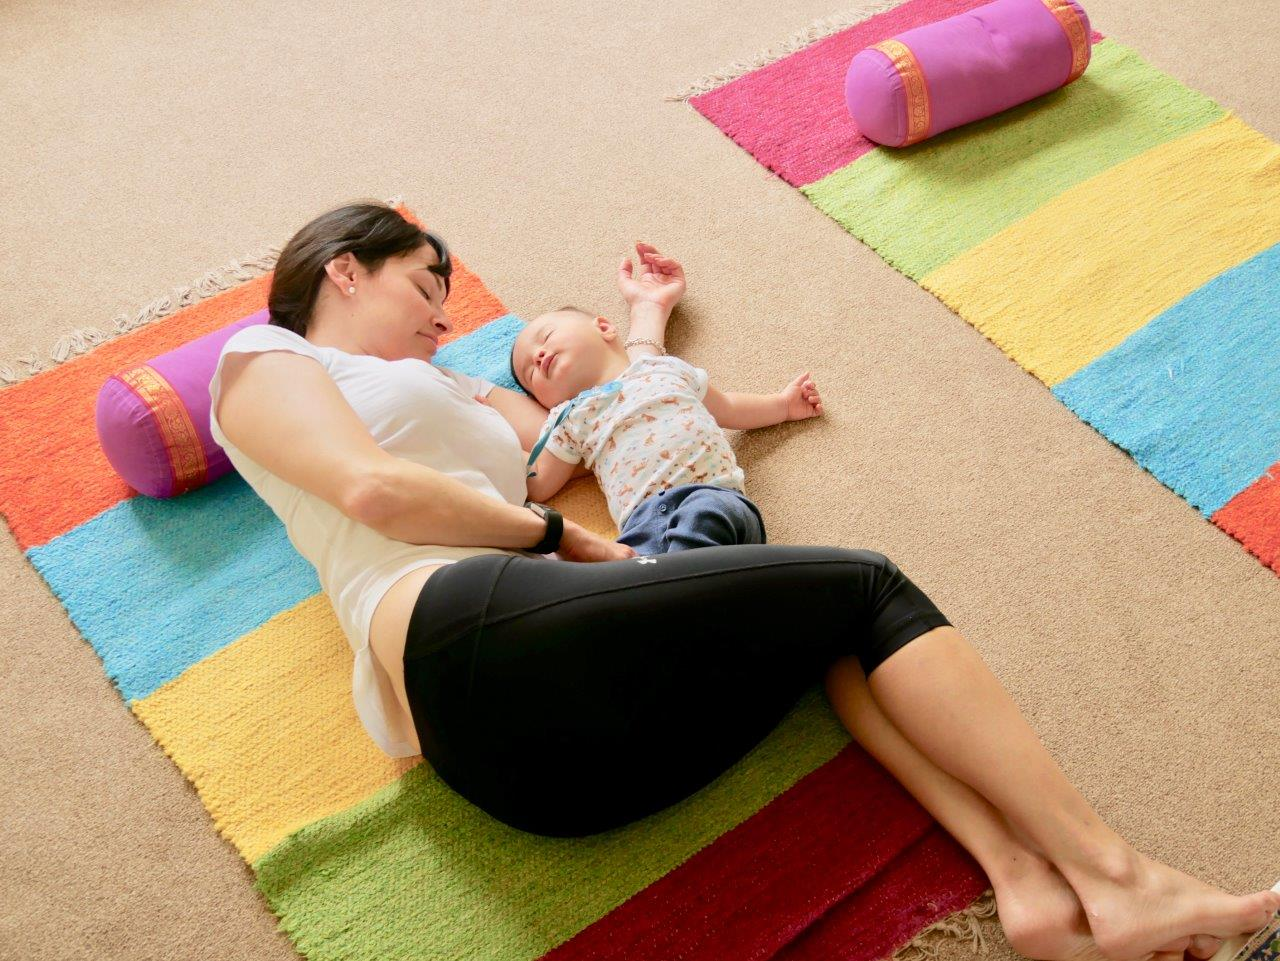 Mum & Baby both relaxing on floor at the end of Mum & Baby yoga class